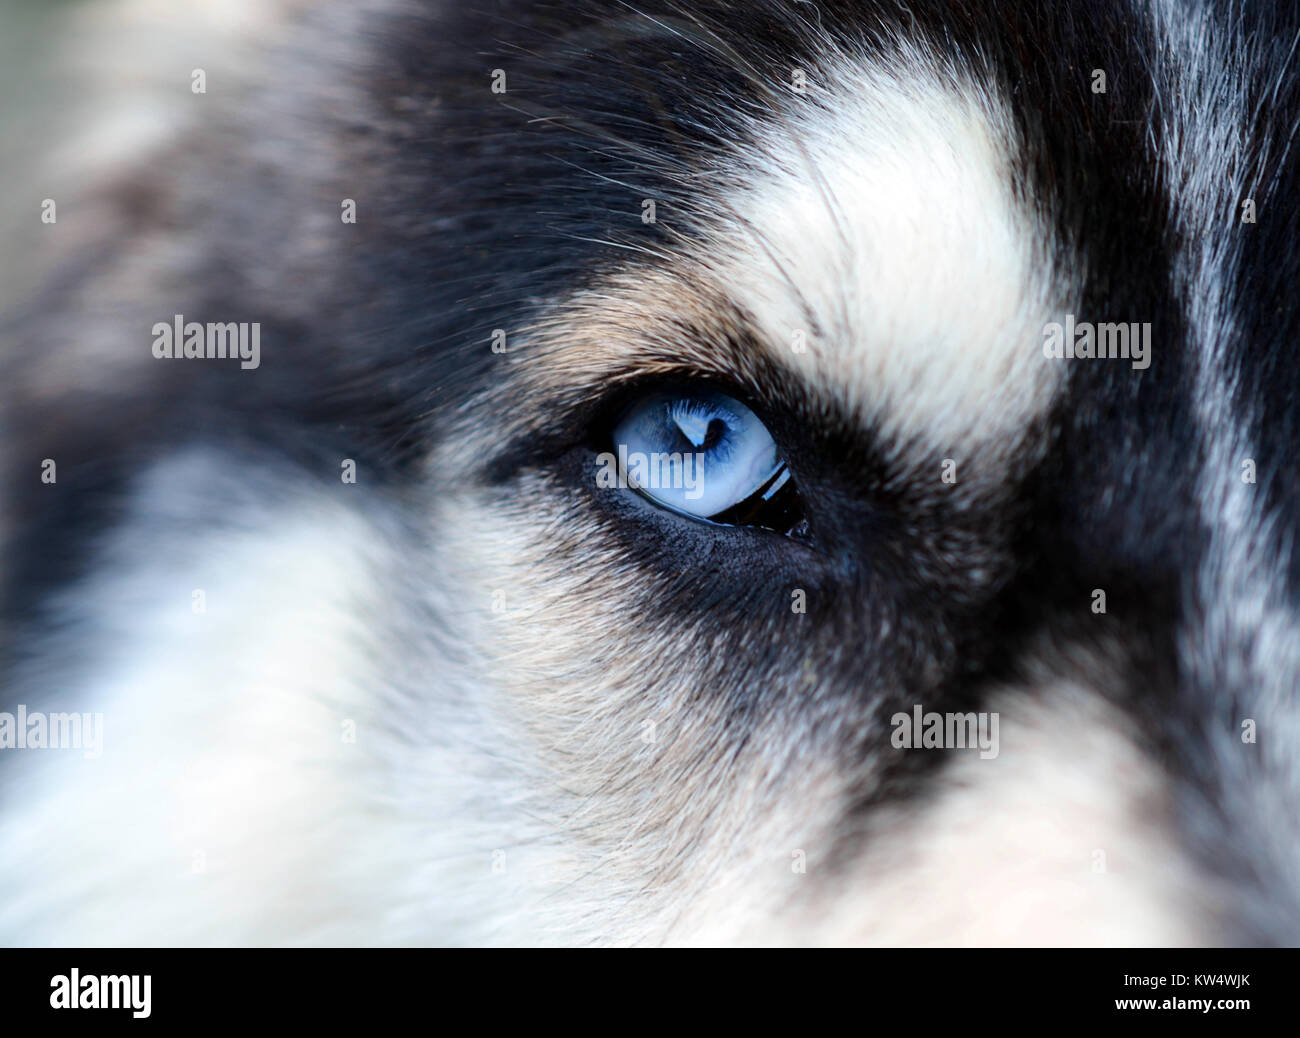 Close Up Of Siberian Husky With Blue Eye Looking Dangerous Stock